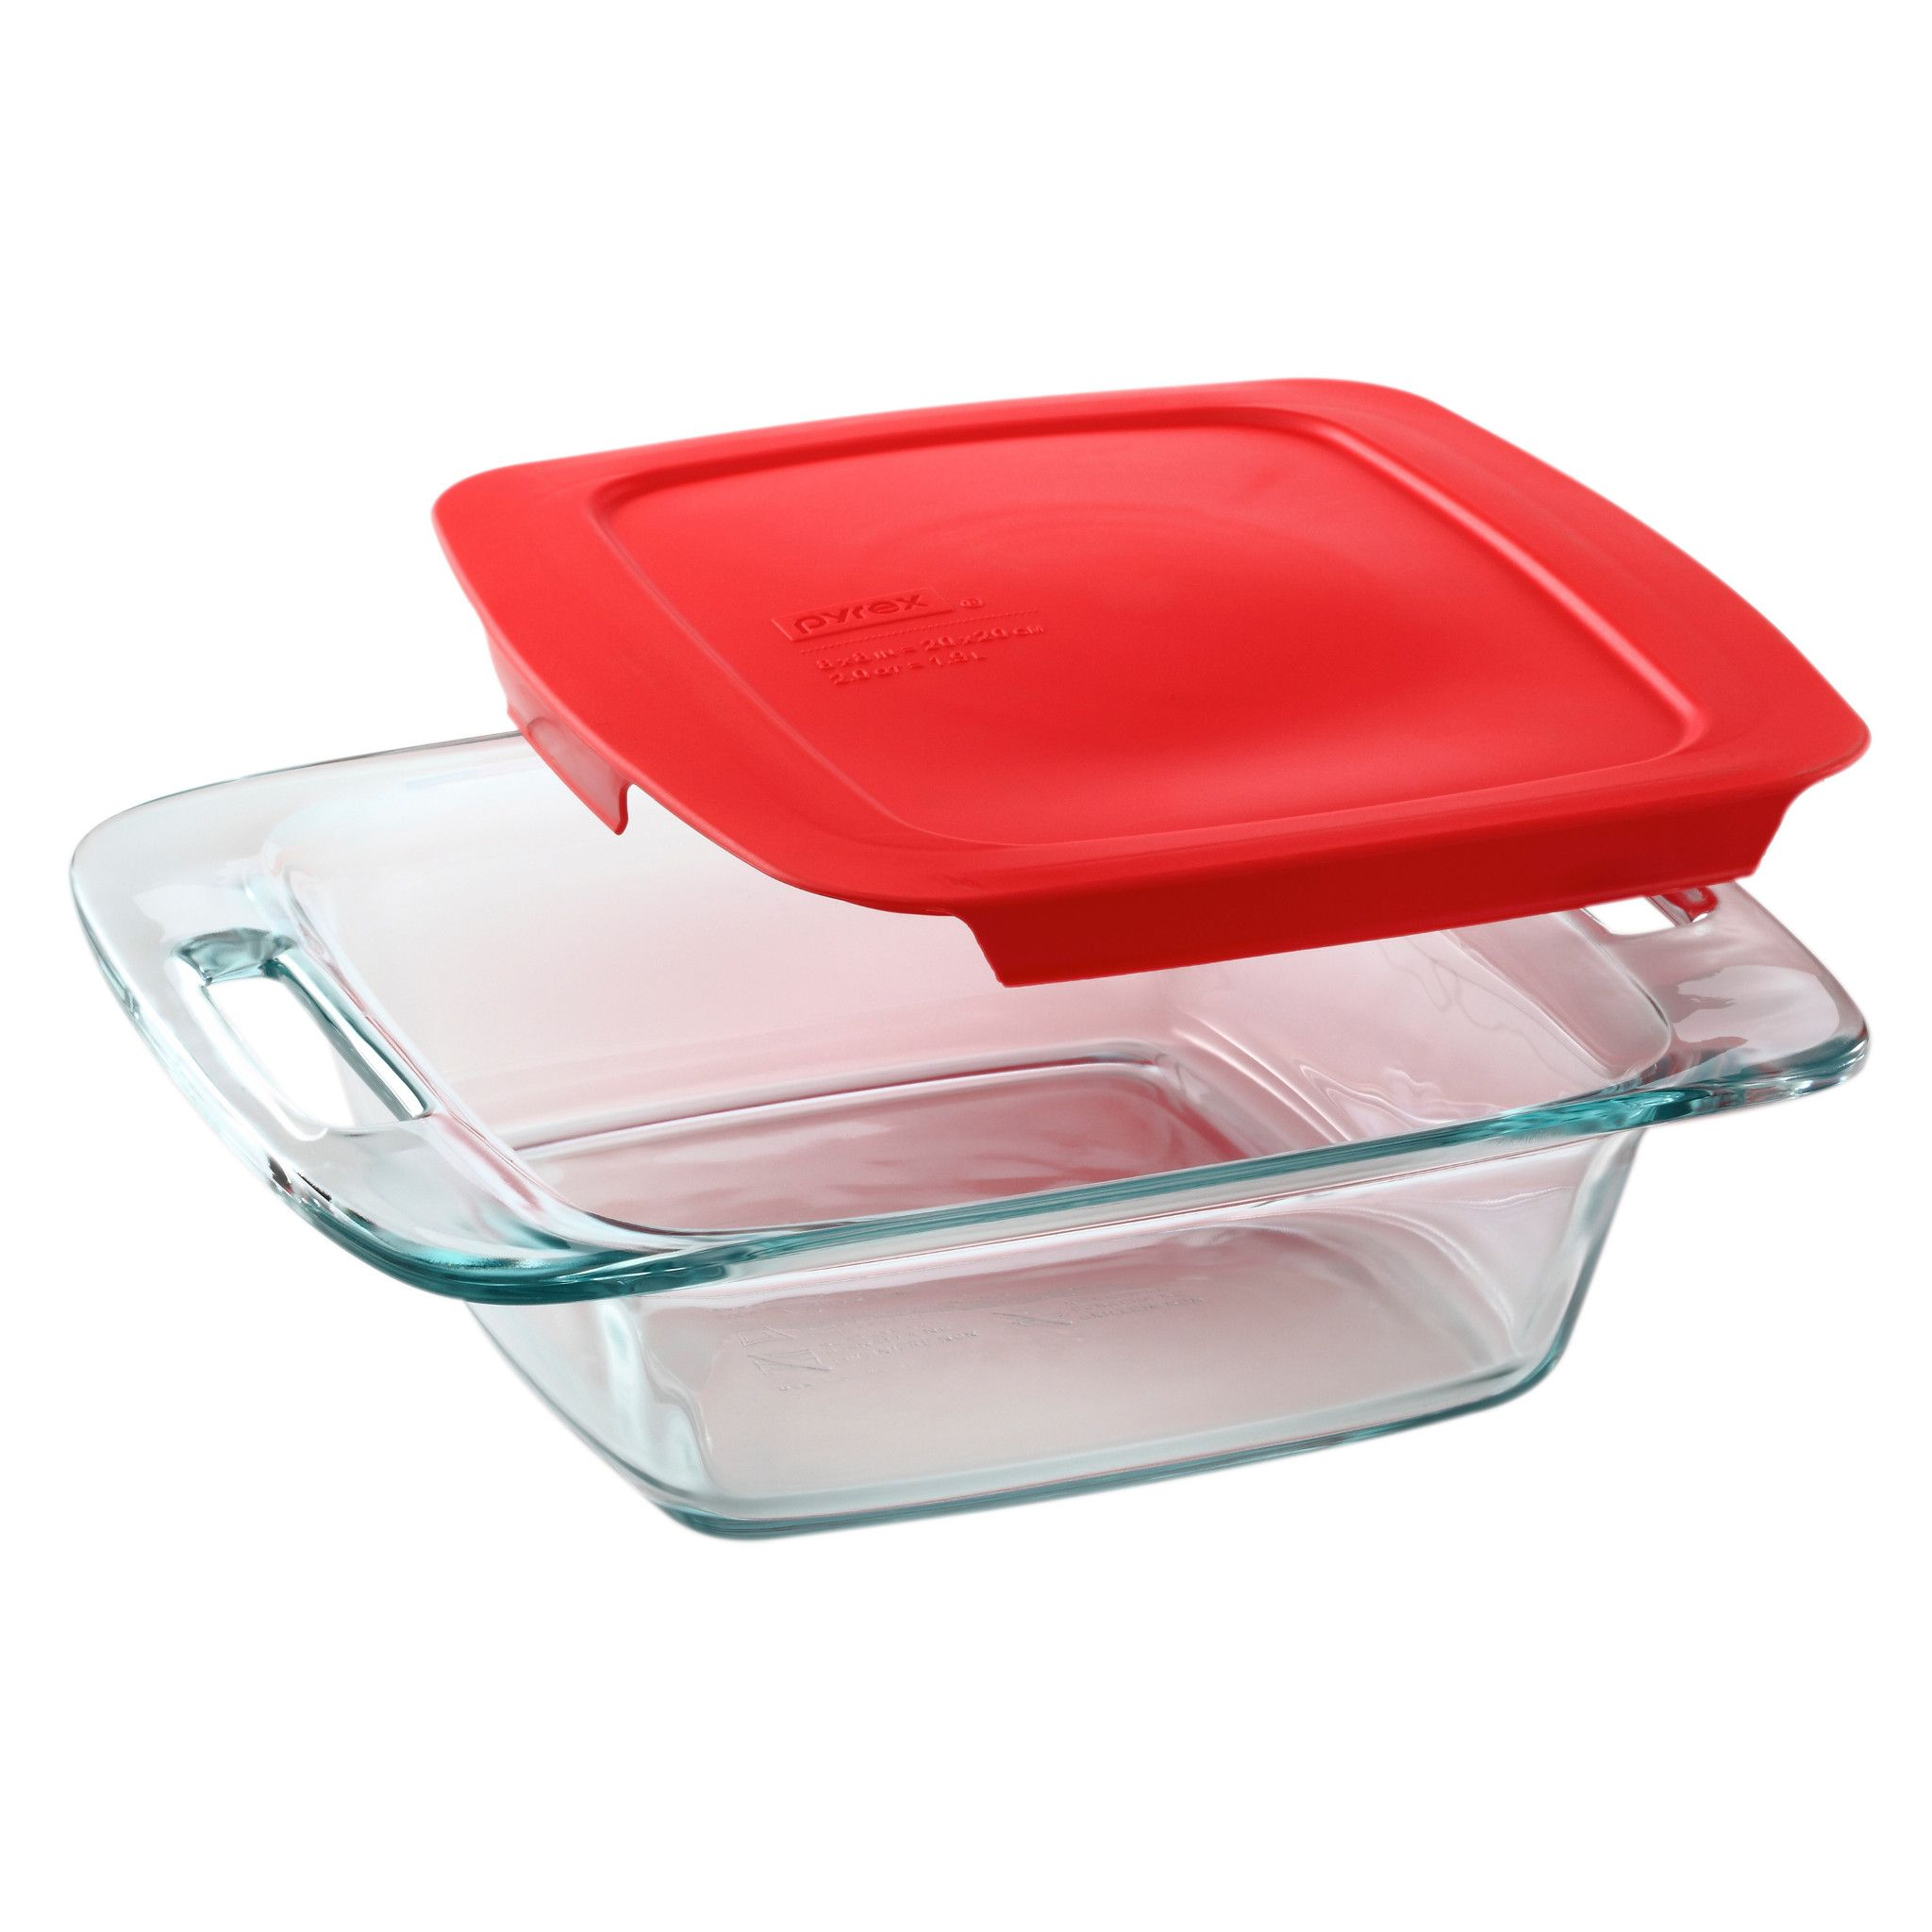 "Pyrex Easy Grab 8"" 2-Quart Square Baking Dish"